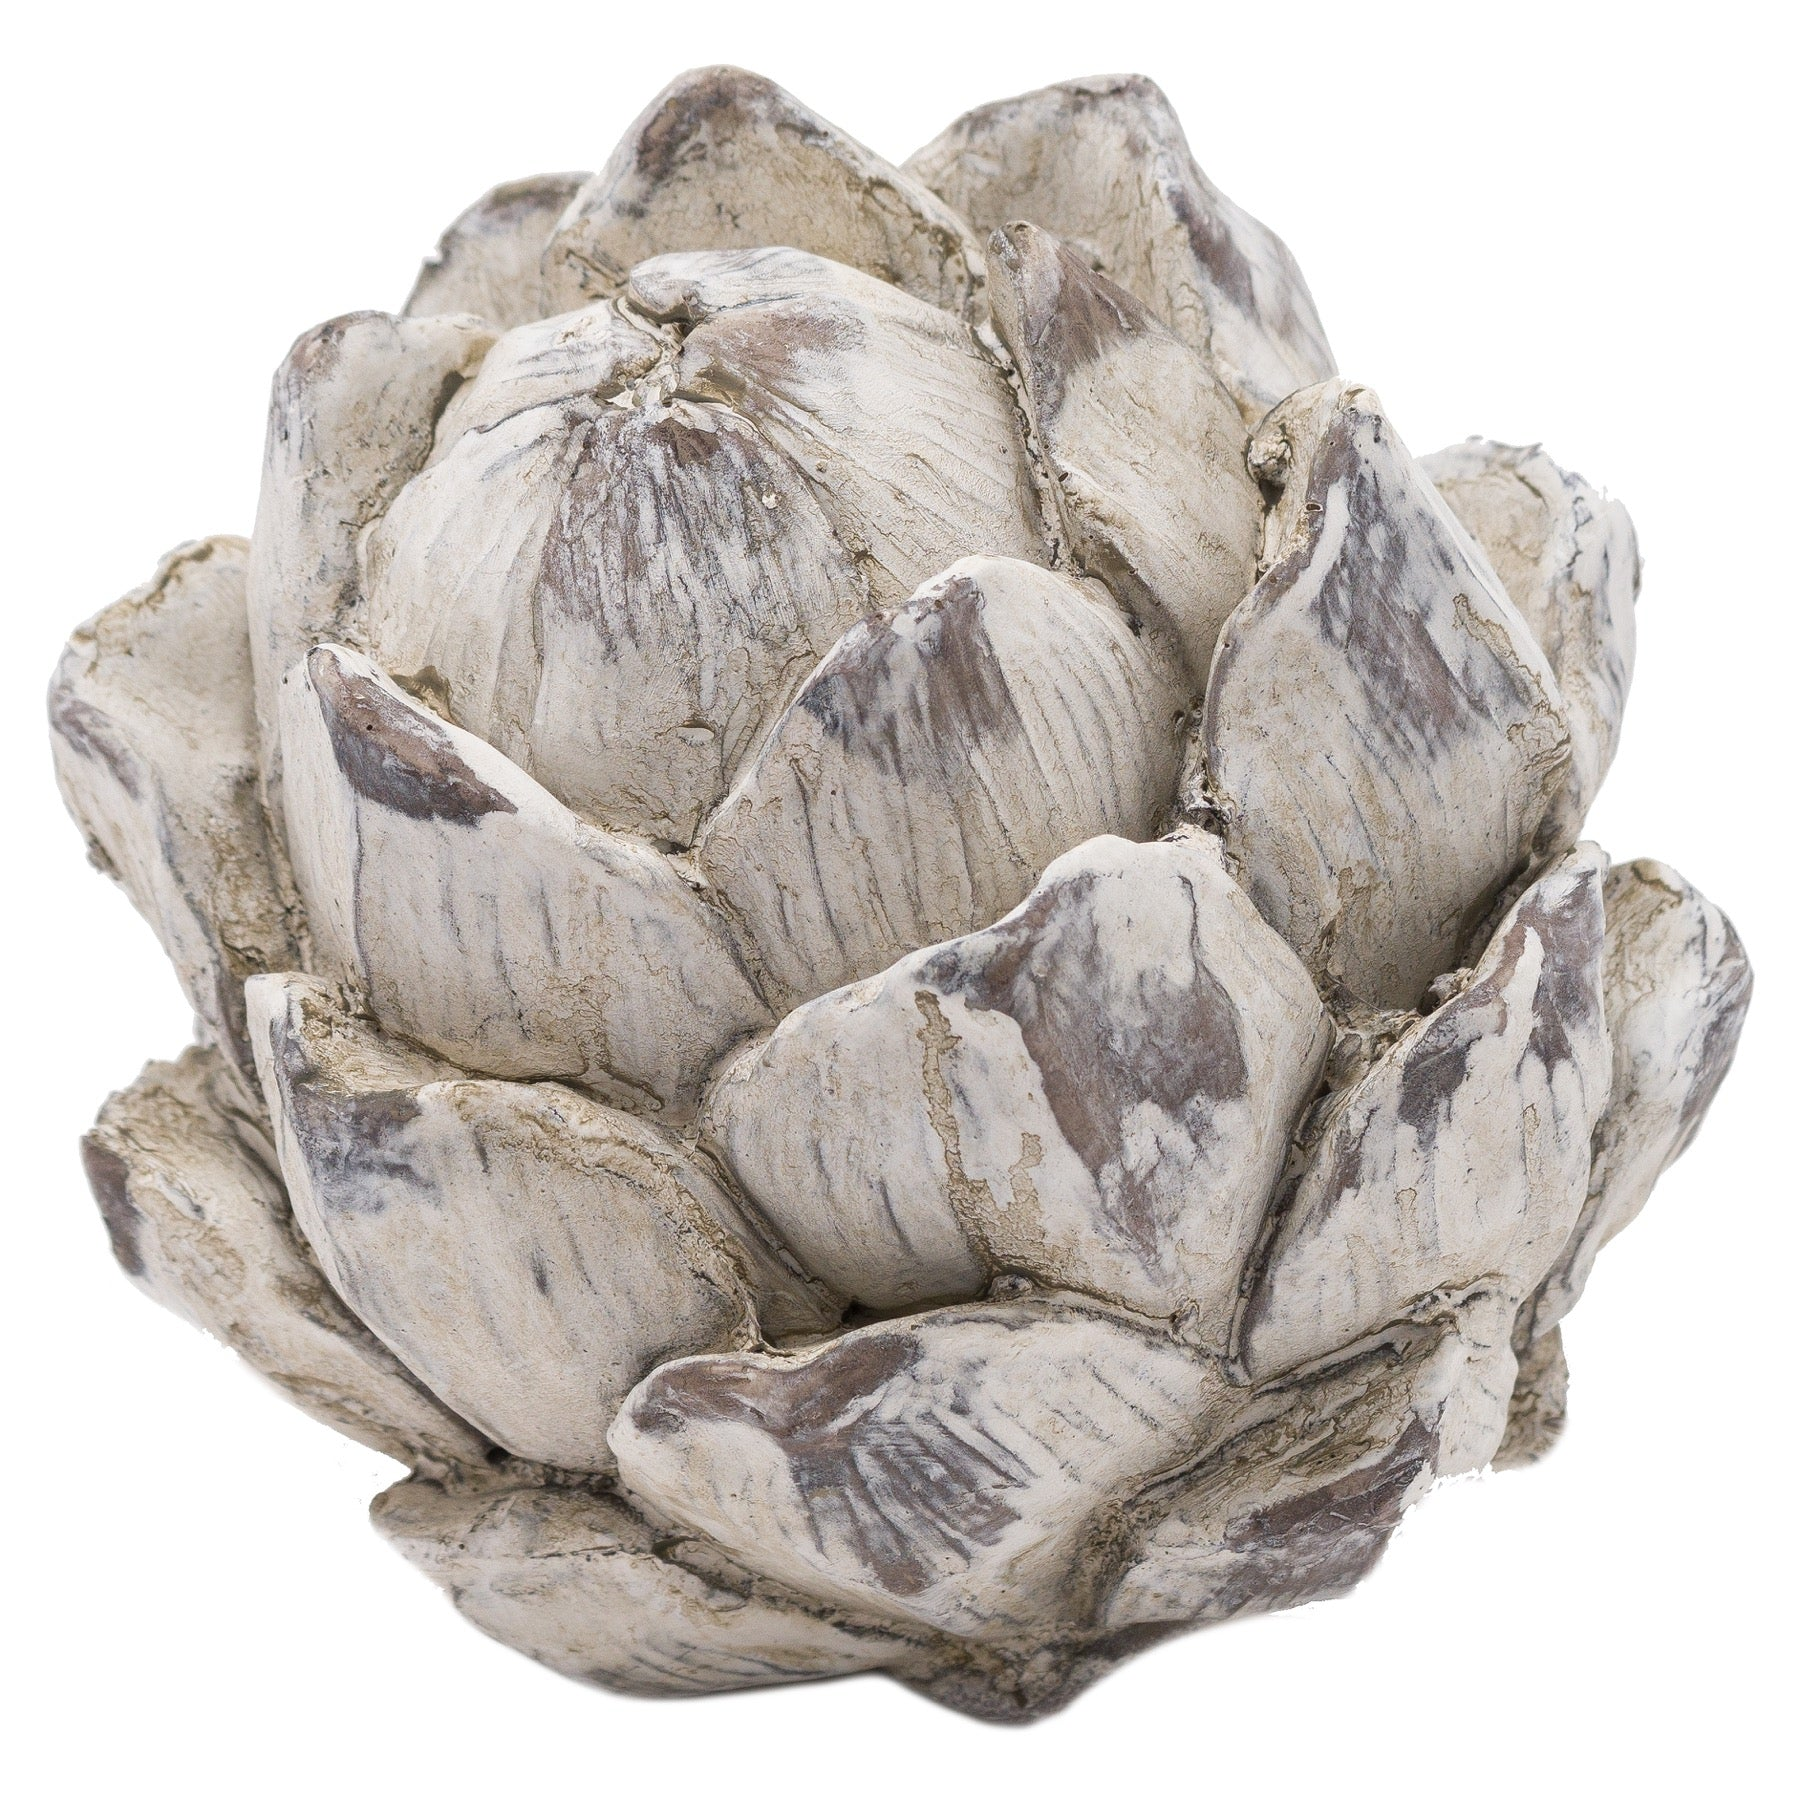 Garda Decorative Small Artichoke